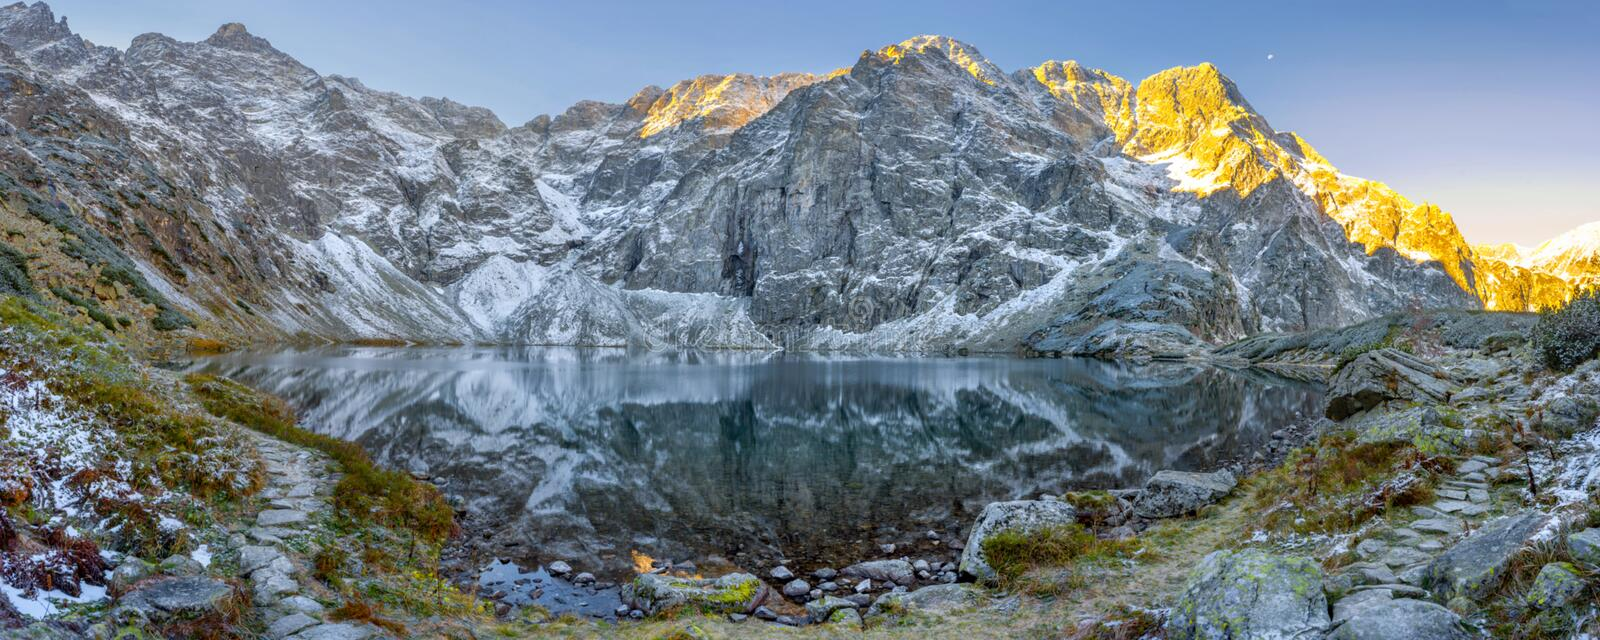 Tatra National Park, a lake in the mountains at the dawn of the sun. Poland stock photos